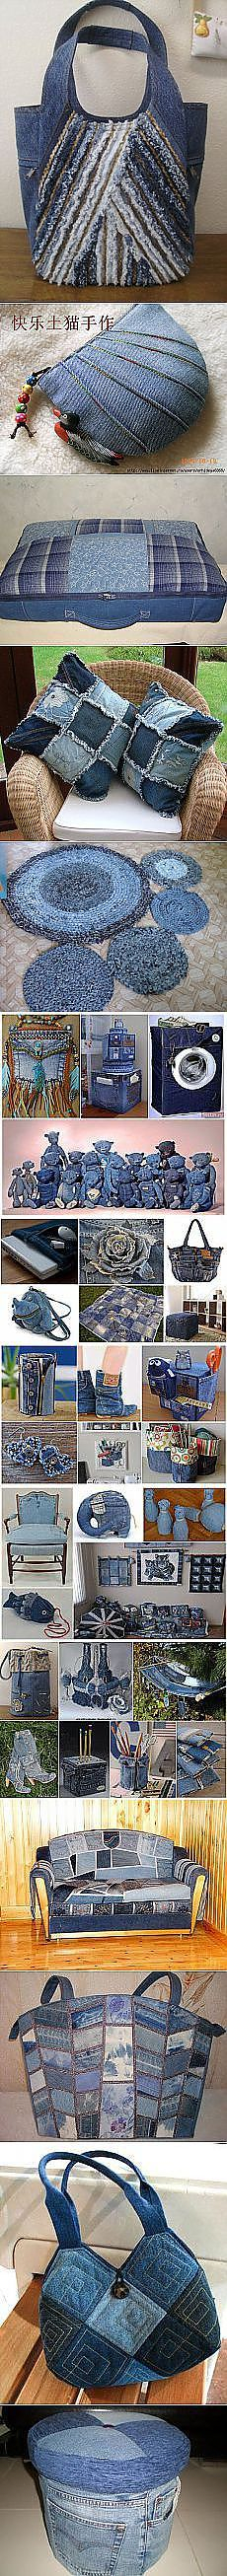 Search Postile: from old jeans Patchwork Bags, Quilted Bag, Denim Handbags, Purses And Handbags, Denim Crafts, Jean Crafts, Jean Purses, Recycle Jeans, Repurpose